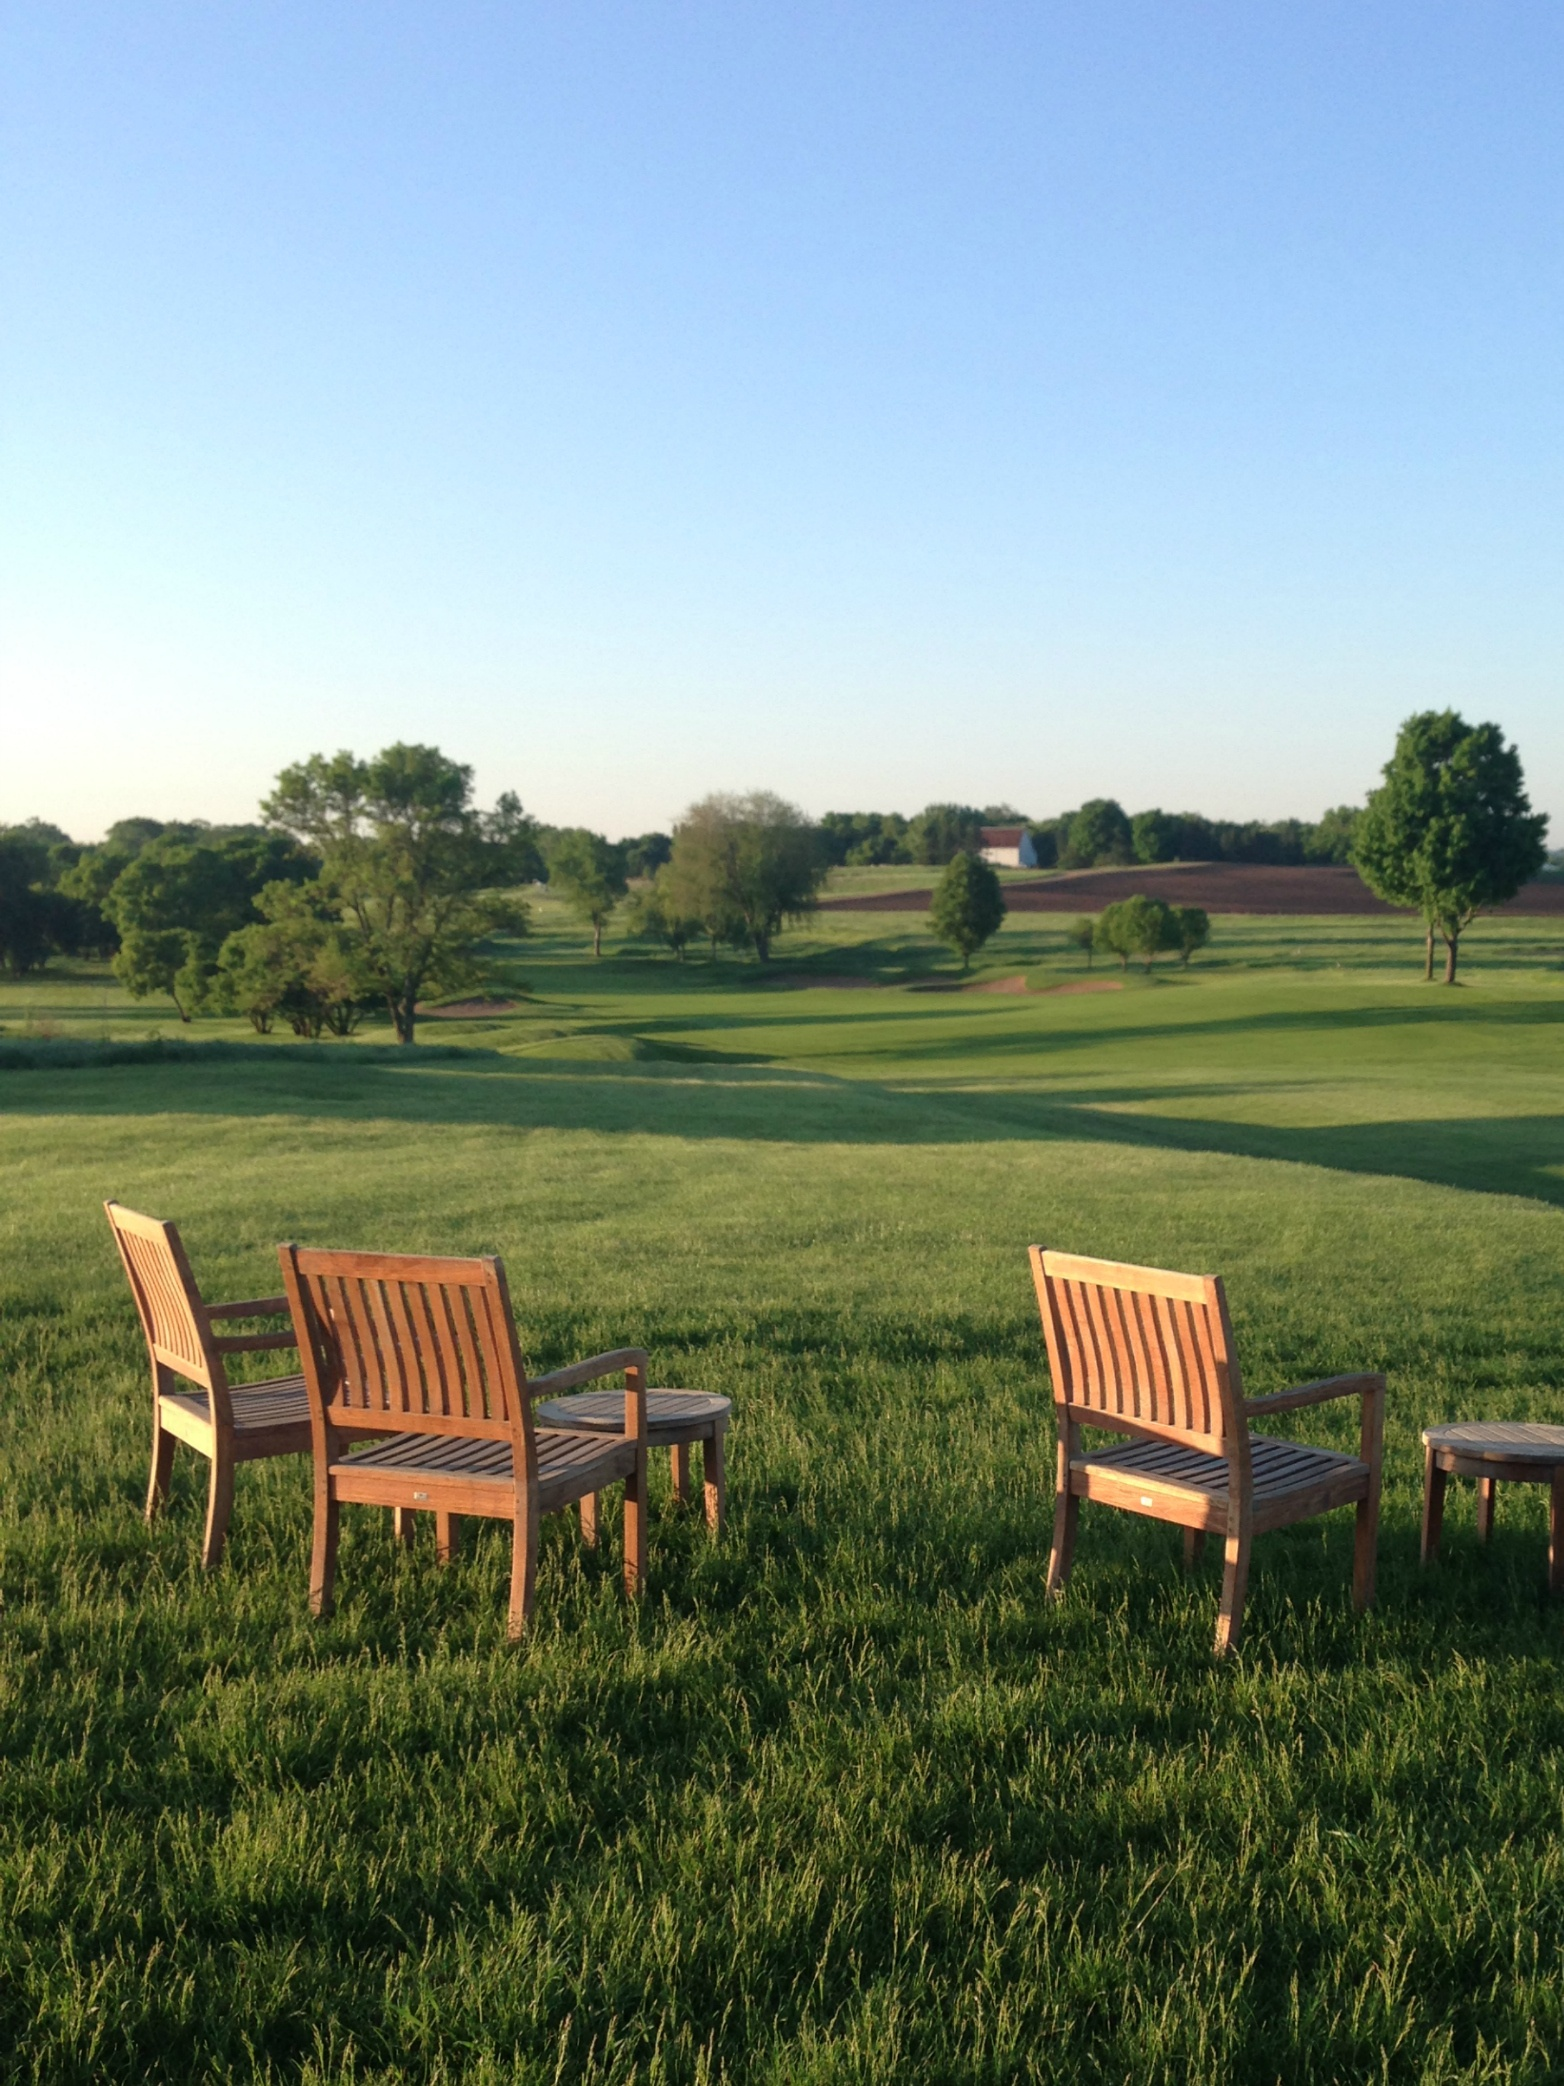 Quiet moment overlooking the first tee before the start of a private golf tournament at Hazeltine National Golf Club